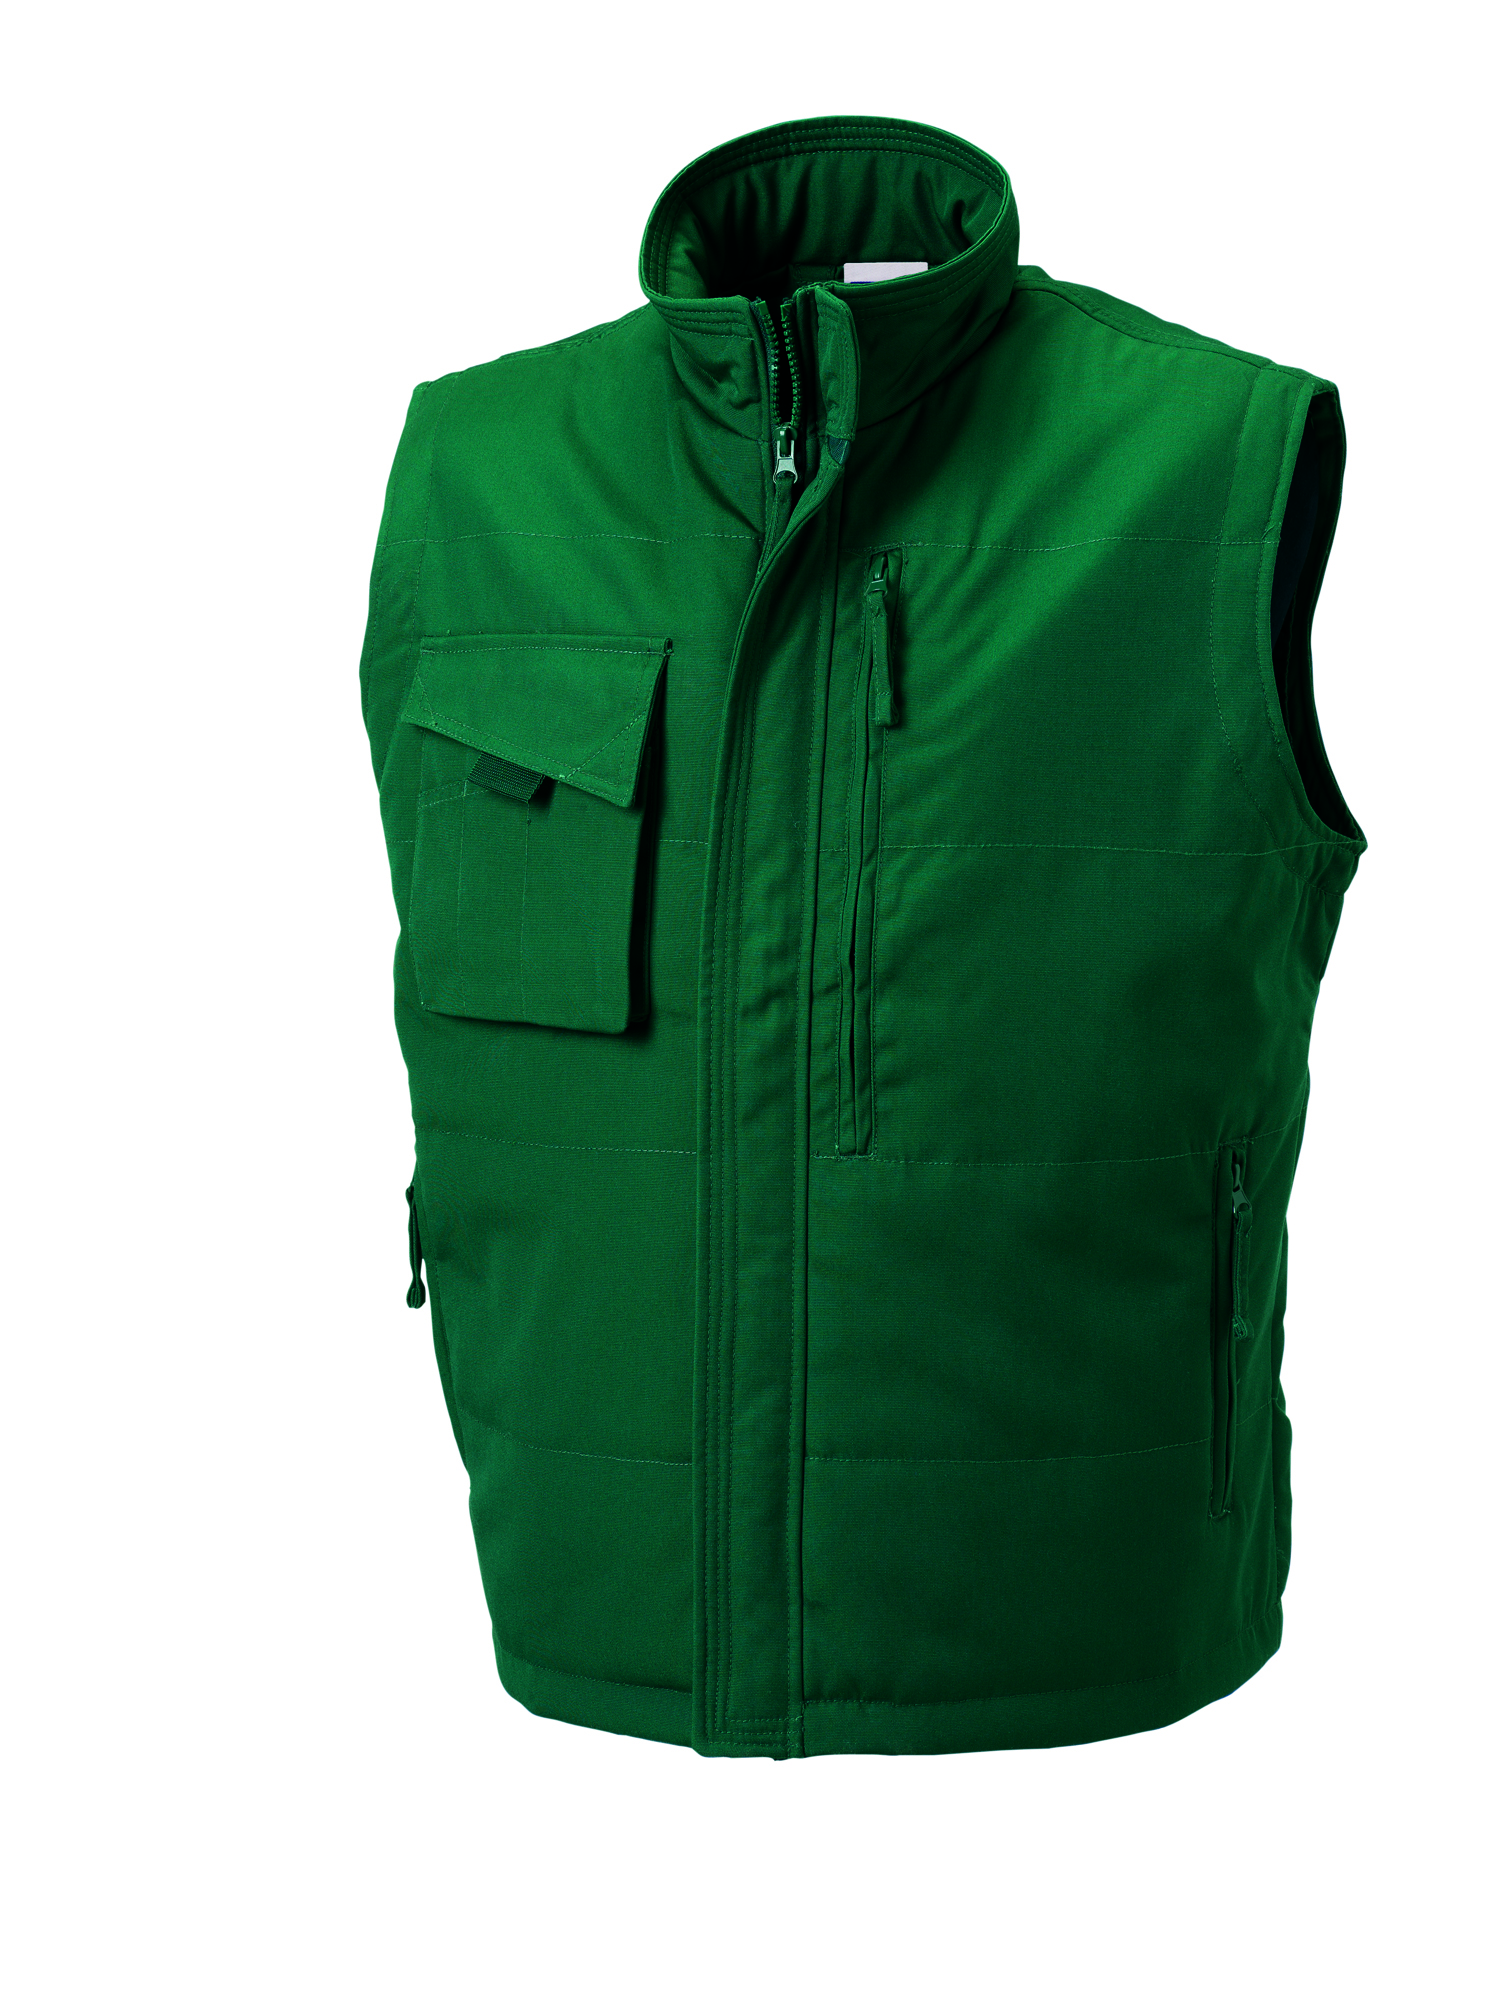 Heavy Duty Gilet - Bottle Green - S